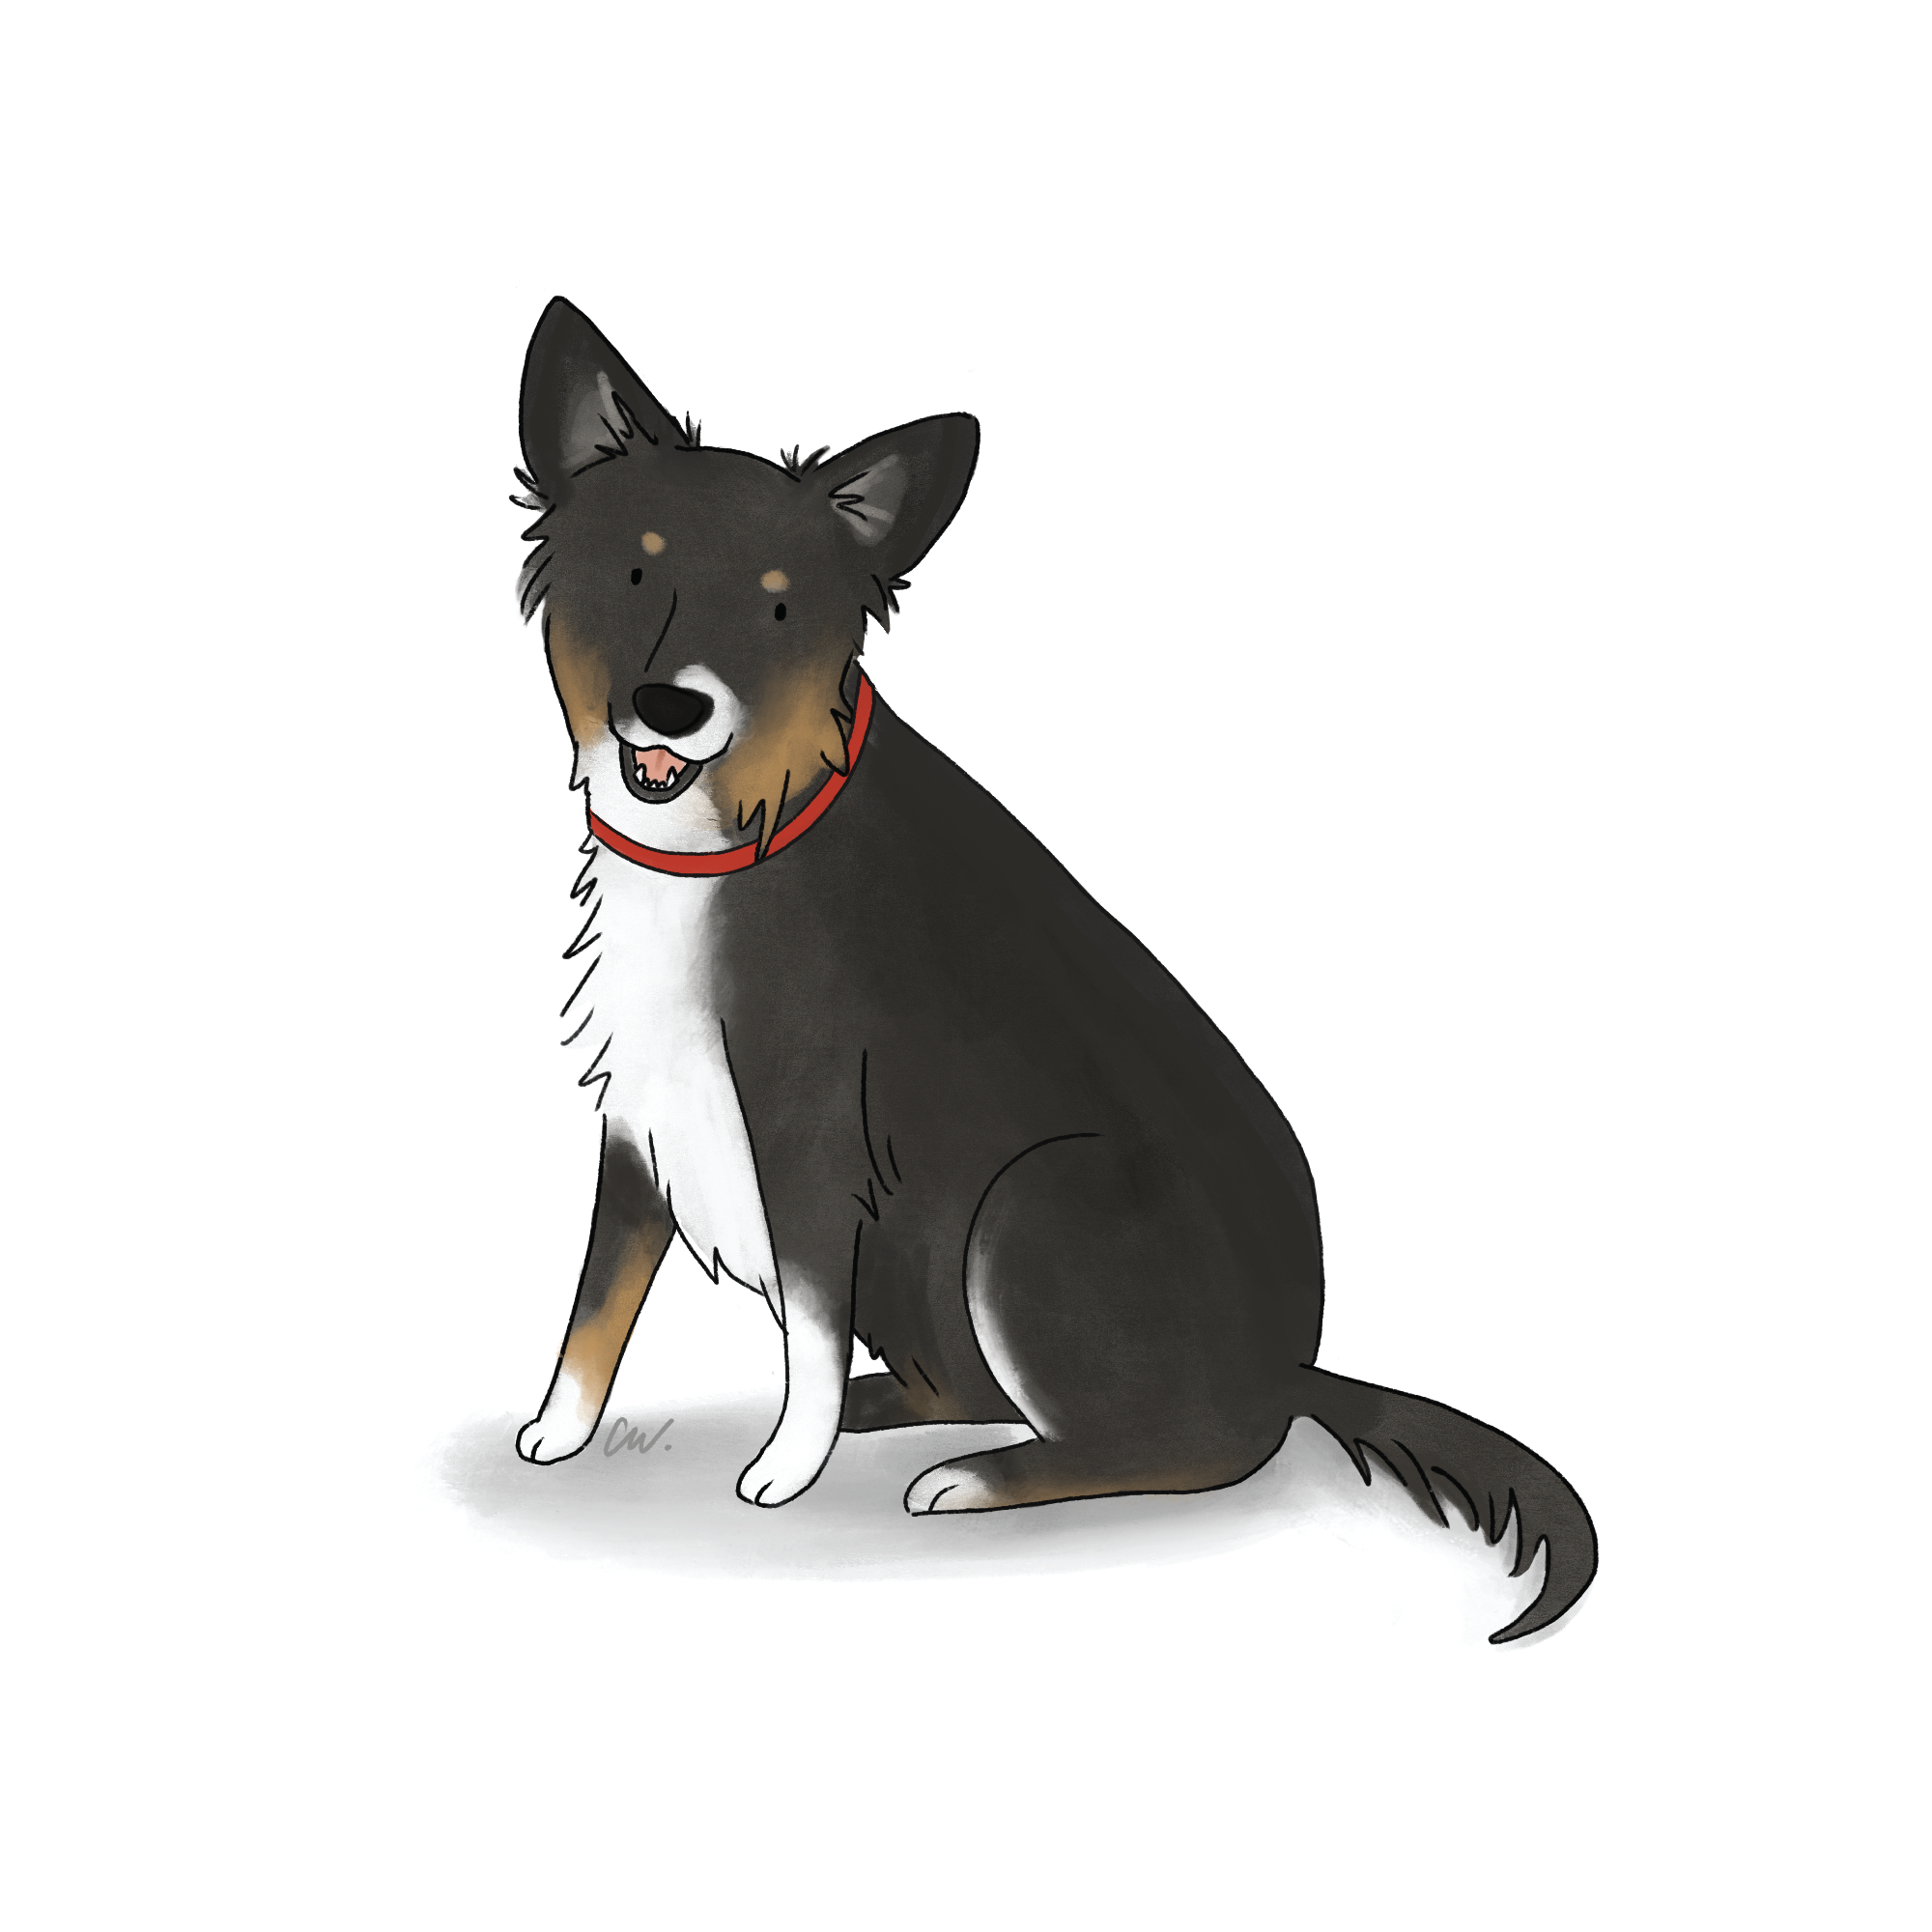 kyle-the-dog.png